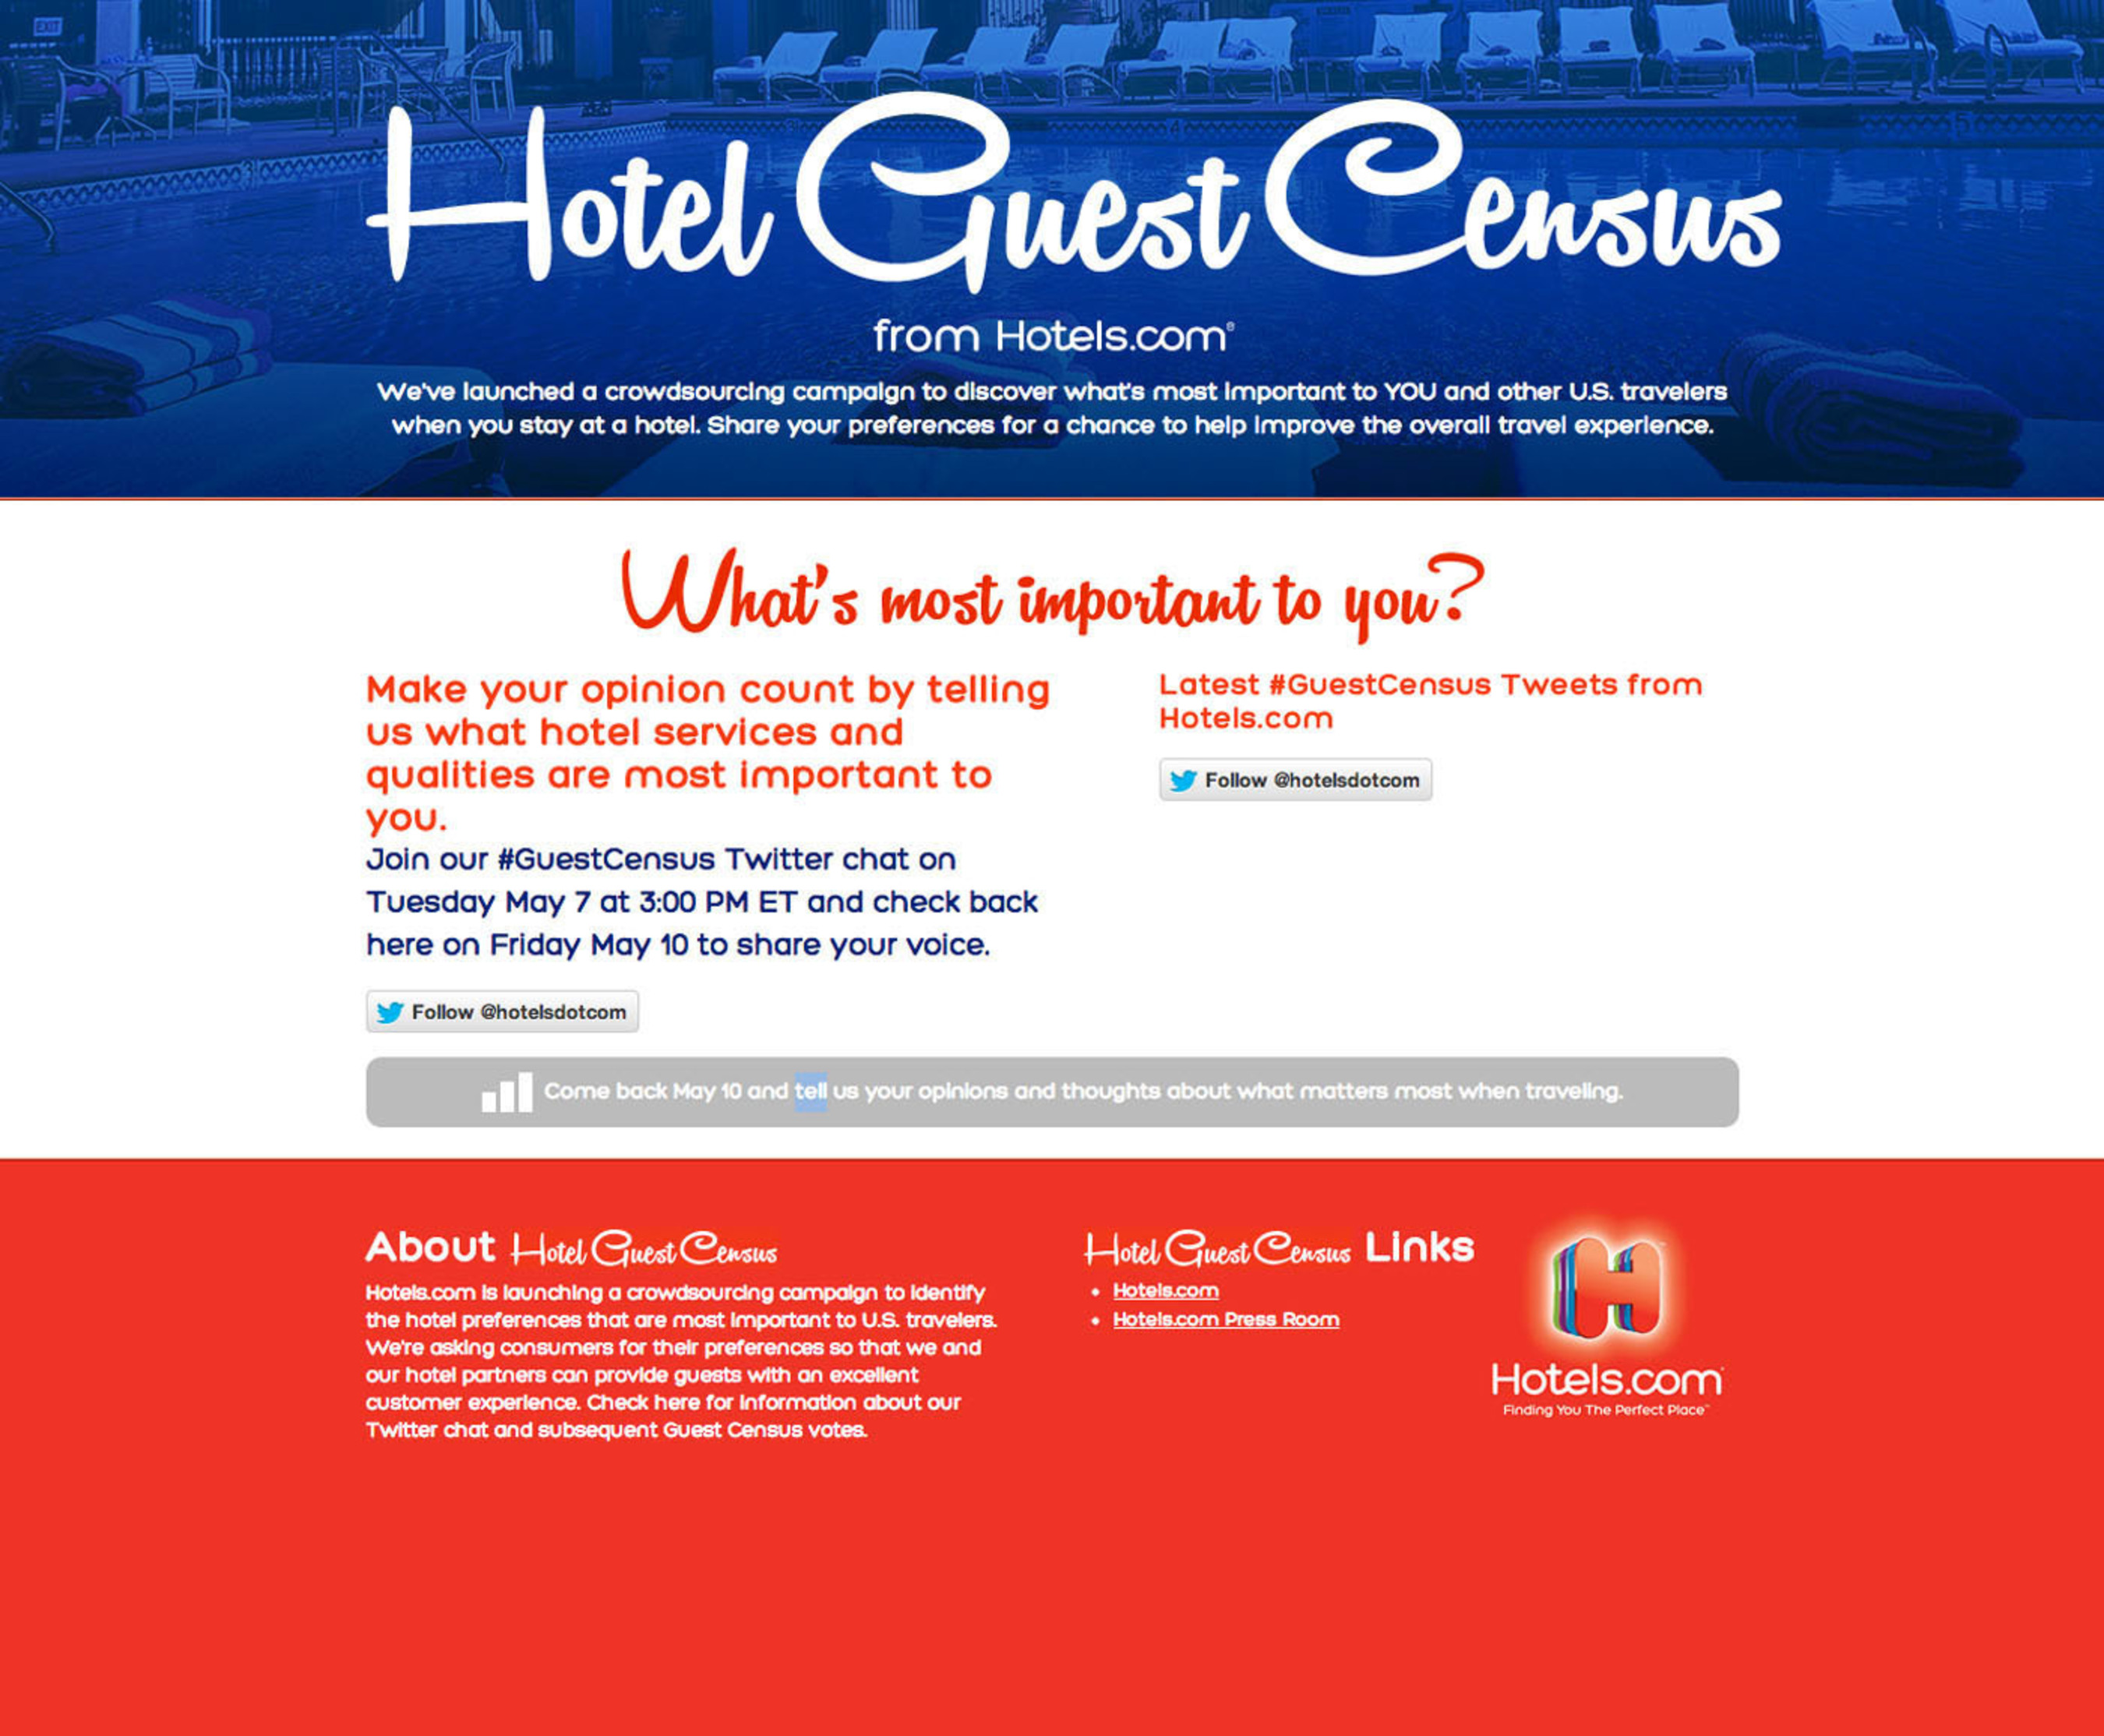 Participate in the Hotels.com #GuestCensus Twitter chat for the chance to win promotional giveaways by visiting the @Hotelsdotcom Twitter handle on Tuesday, May 7 from 3:00 to 4:00 PM ET.  (PRNewsFoto/Hotels.com)